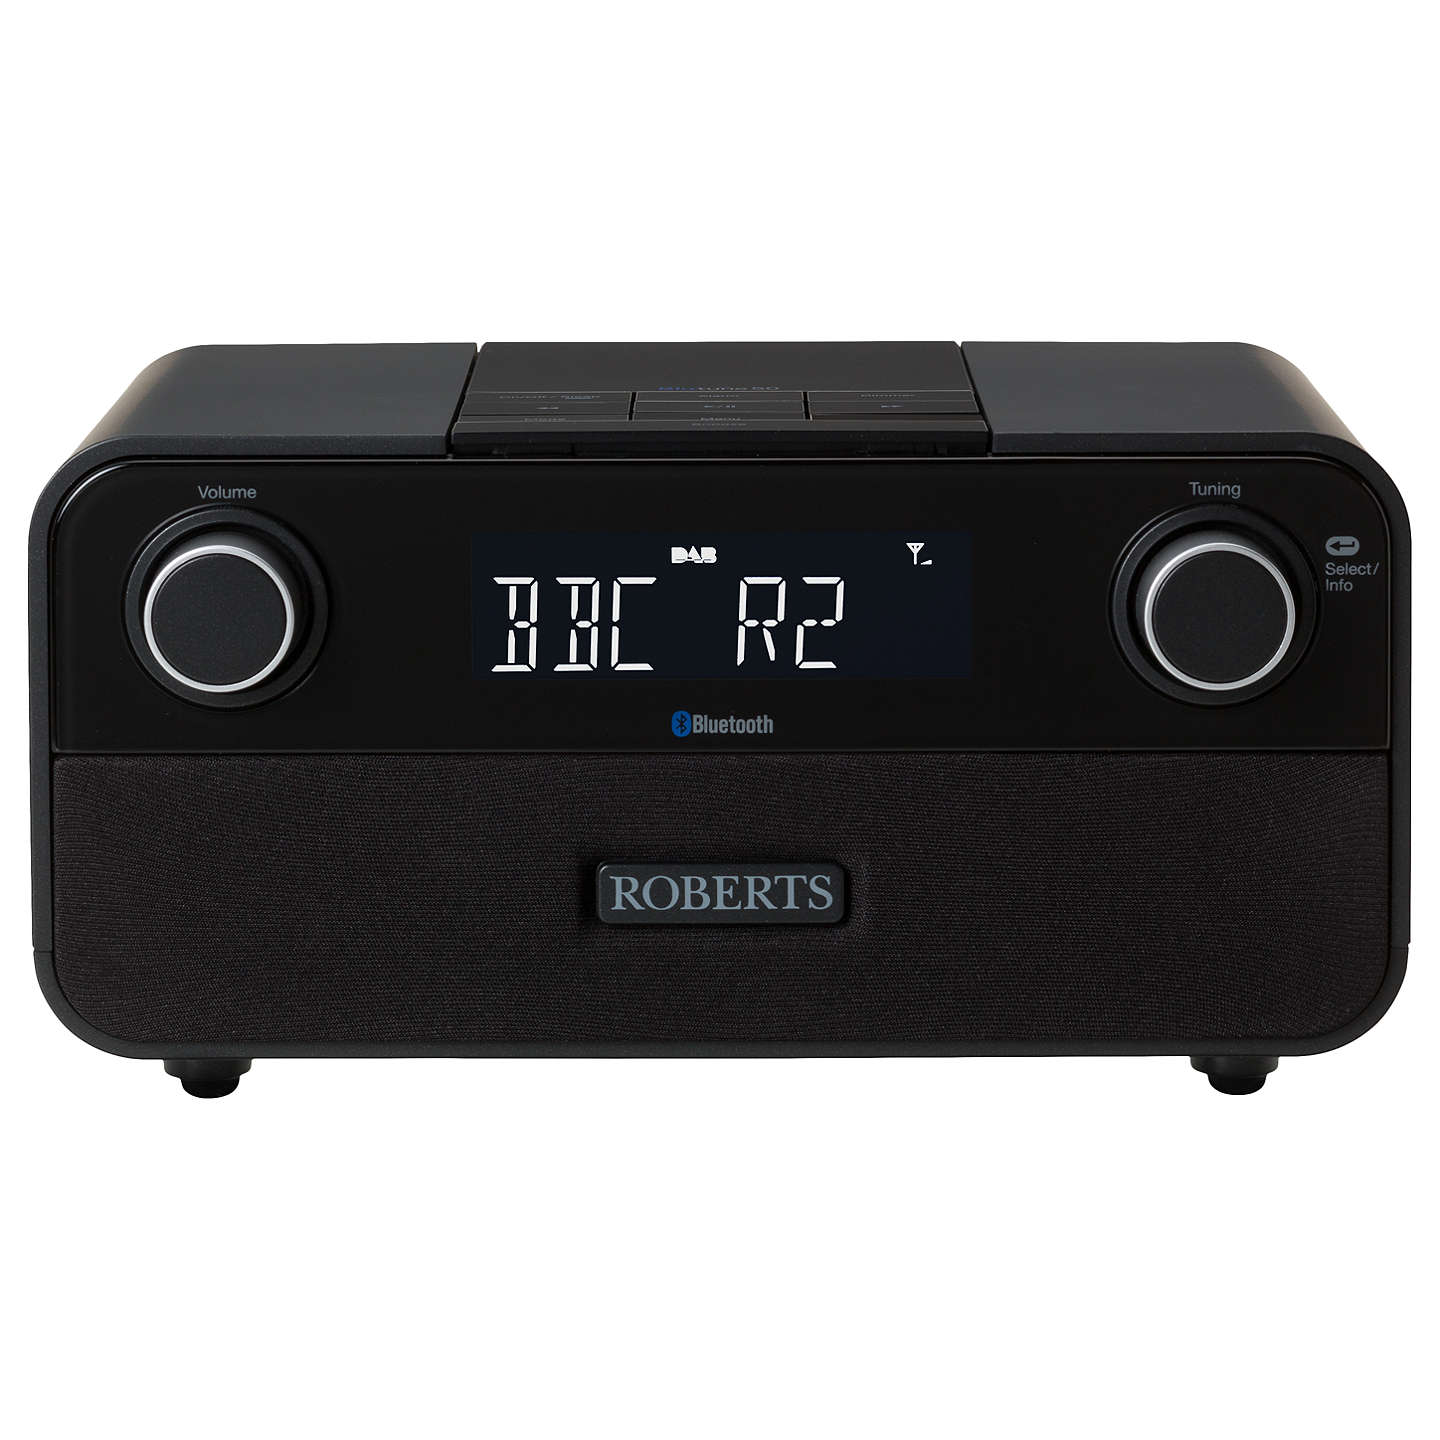 roberts blutune 50 2 1 bluetooth dab dab fm digital radio. Black Bedroom Furniture Sets. Home Design Ideas